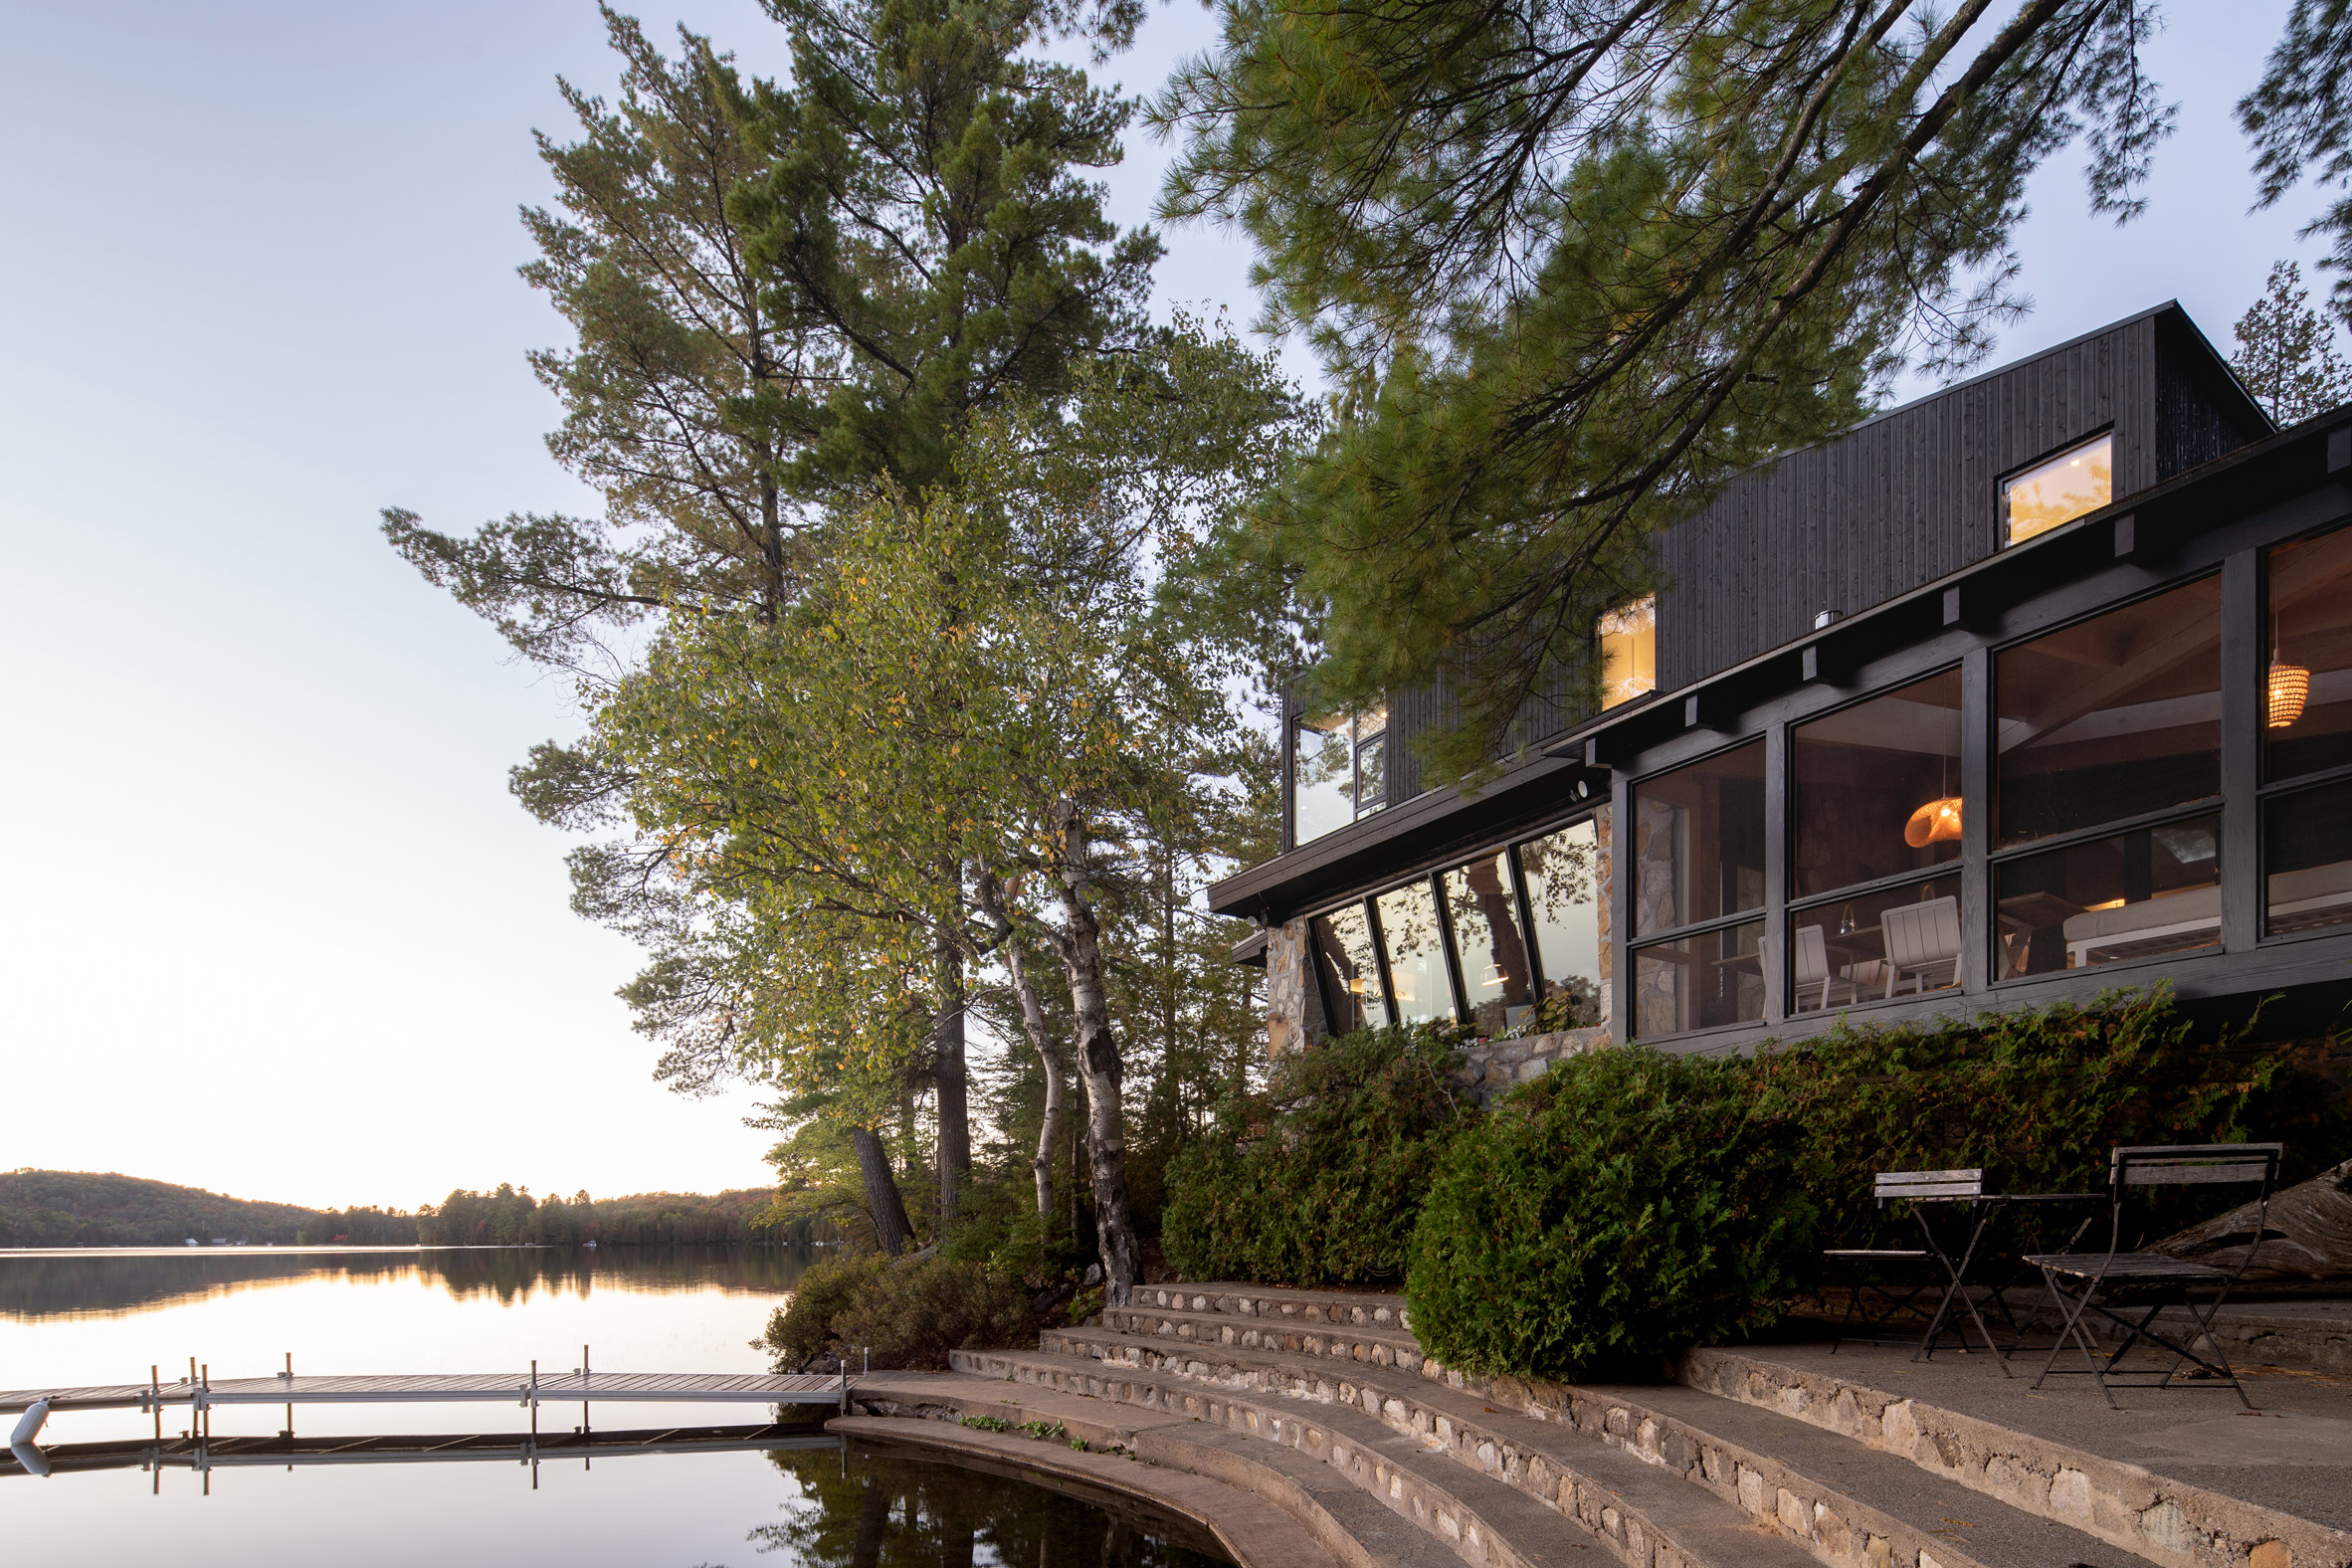 Extension to a cabin by a lake in Quebec